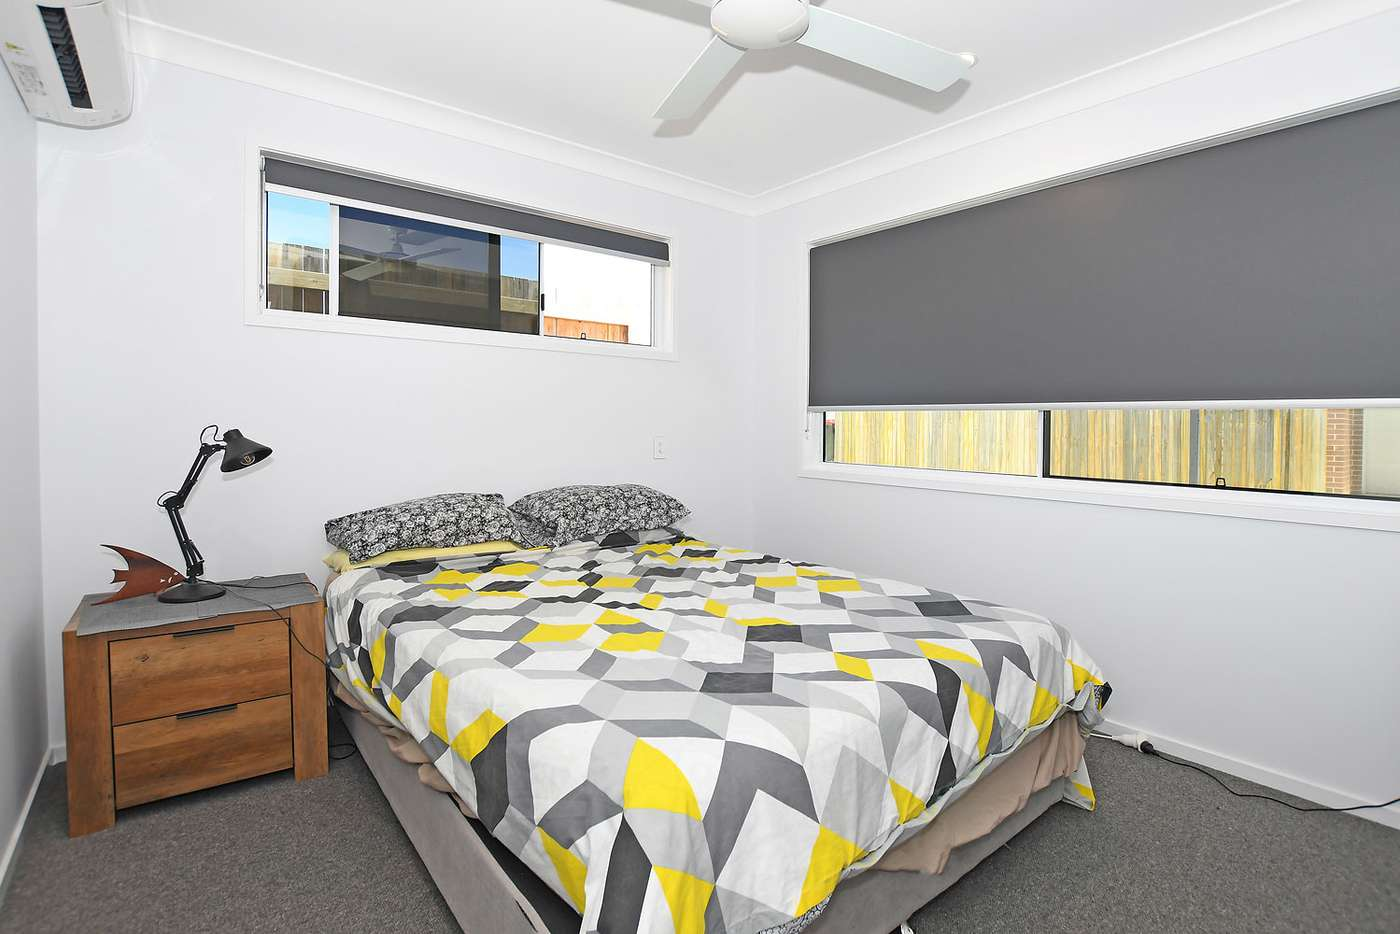 Seventh view of Homely unit listing, Unit 7/235 Torquay Terrace, Torquay QLD 4655